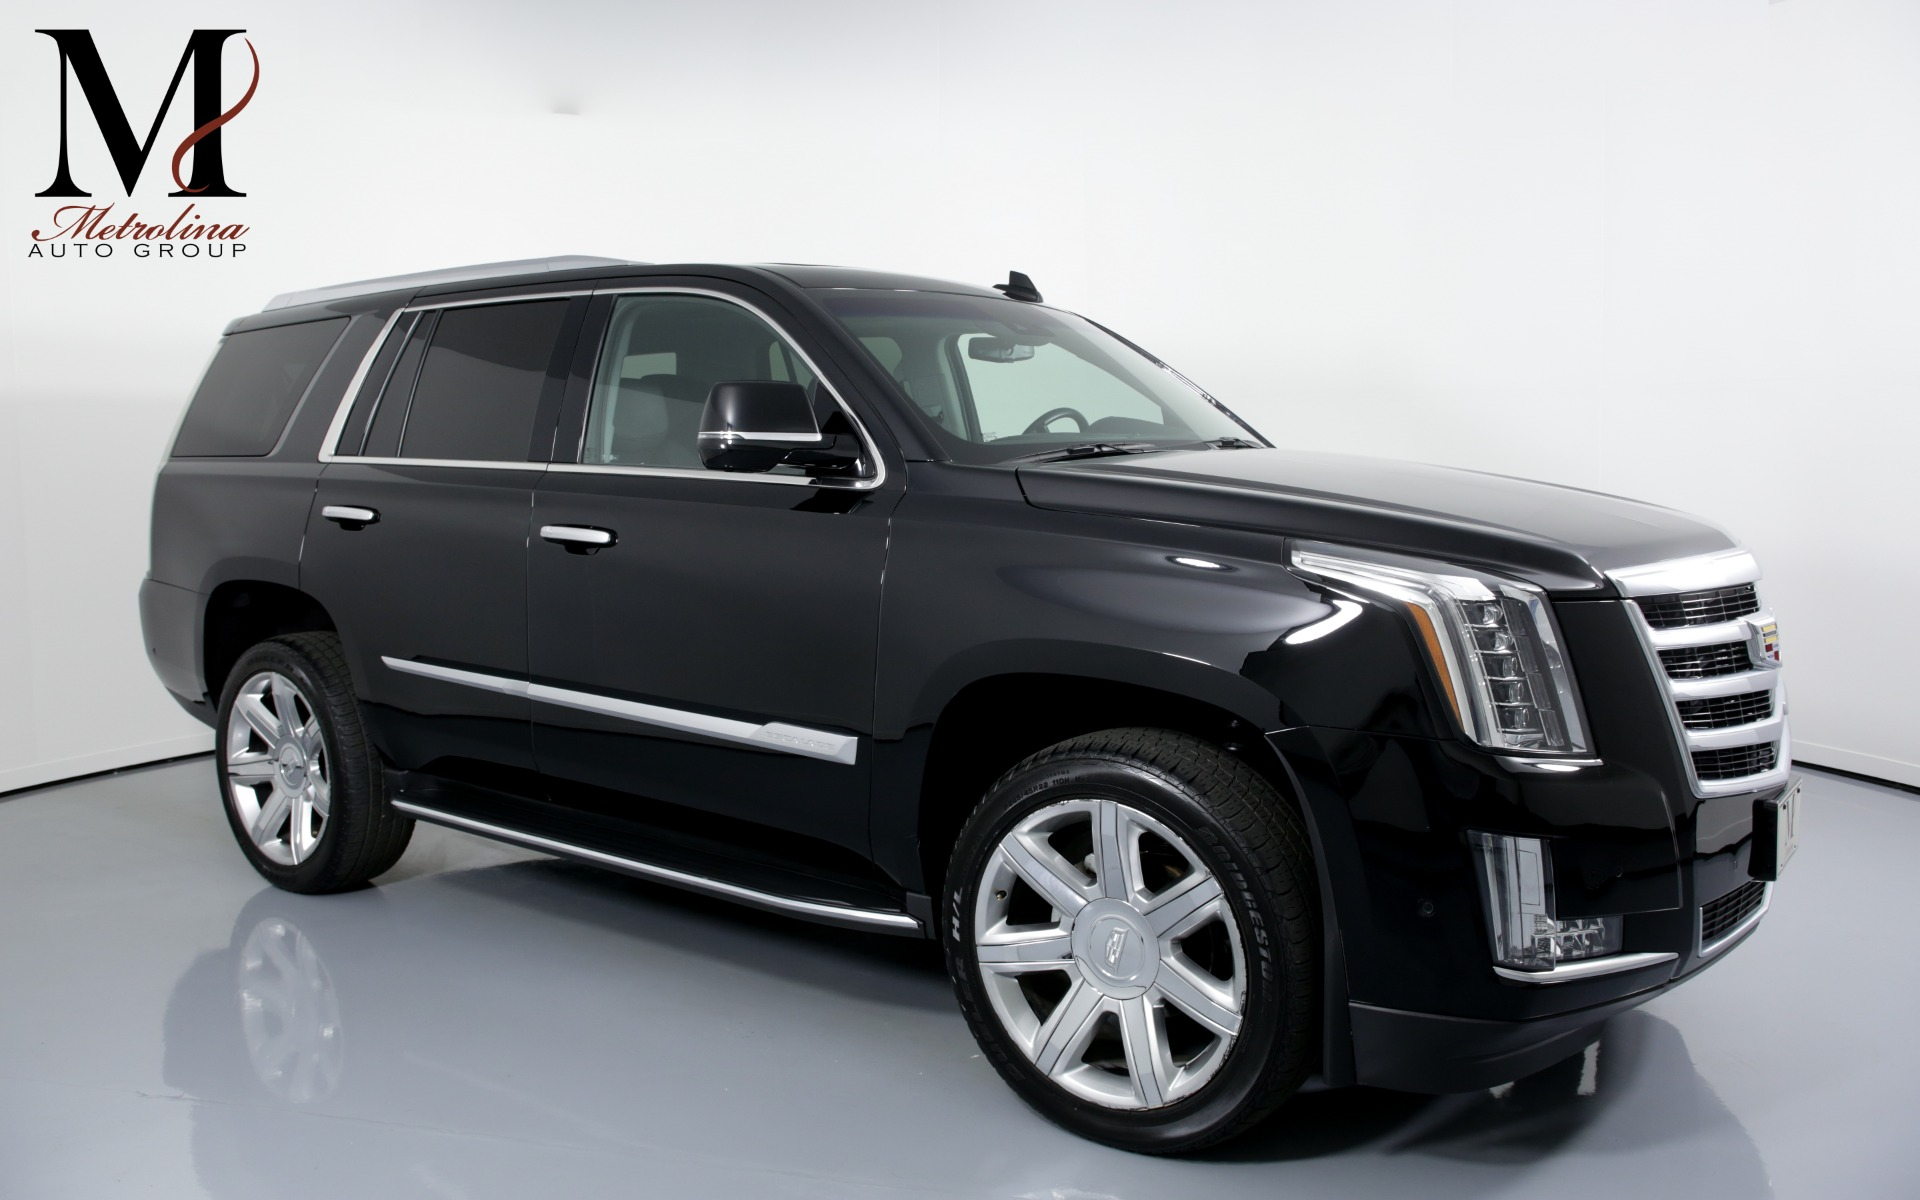 Used 2017 Cadillac Escalade Luxury 4x4 4dr SUV for sale $44,996 at Metrolina Auto Group in Charlotte NC 28217 - 1